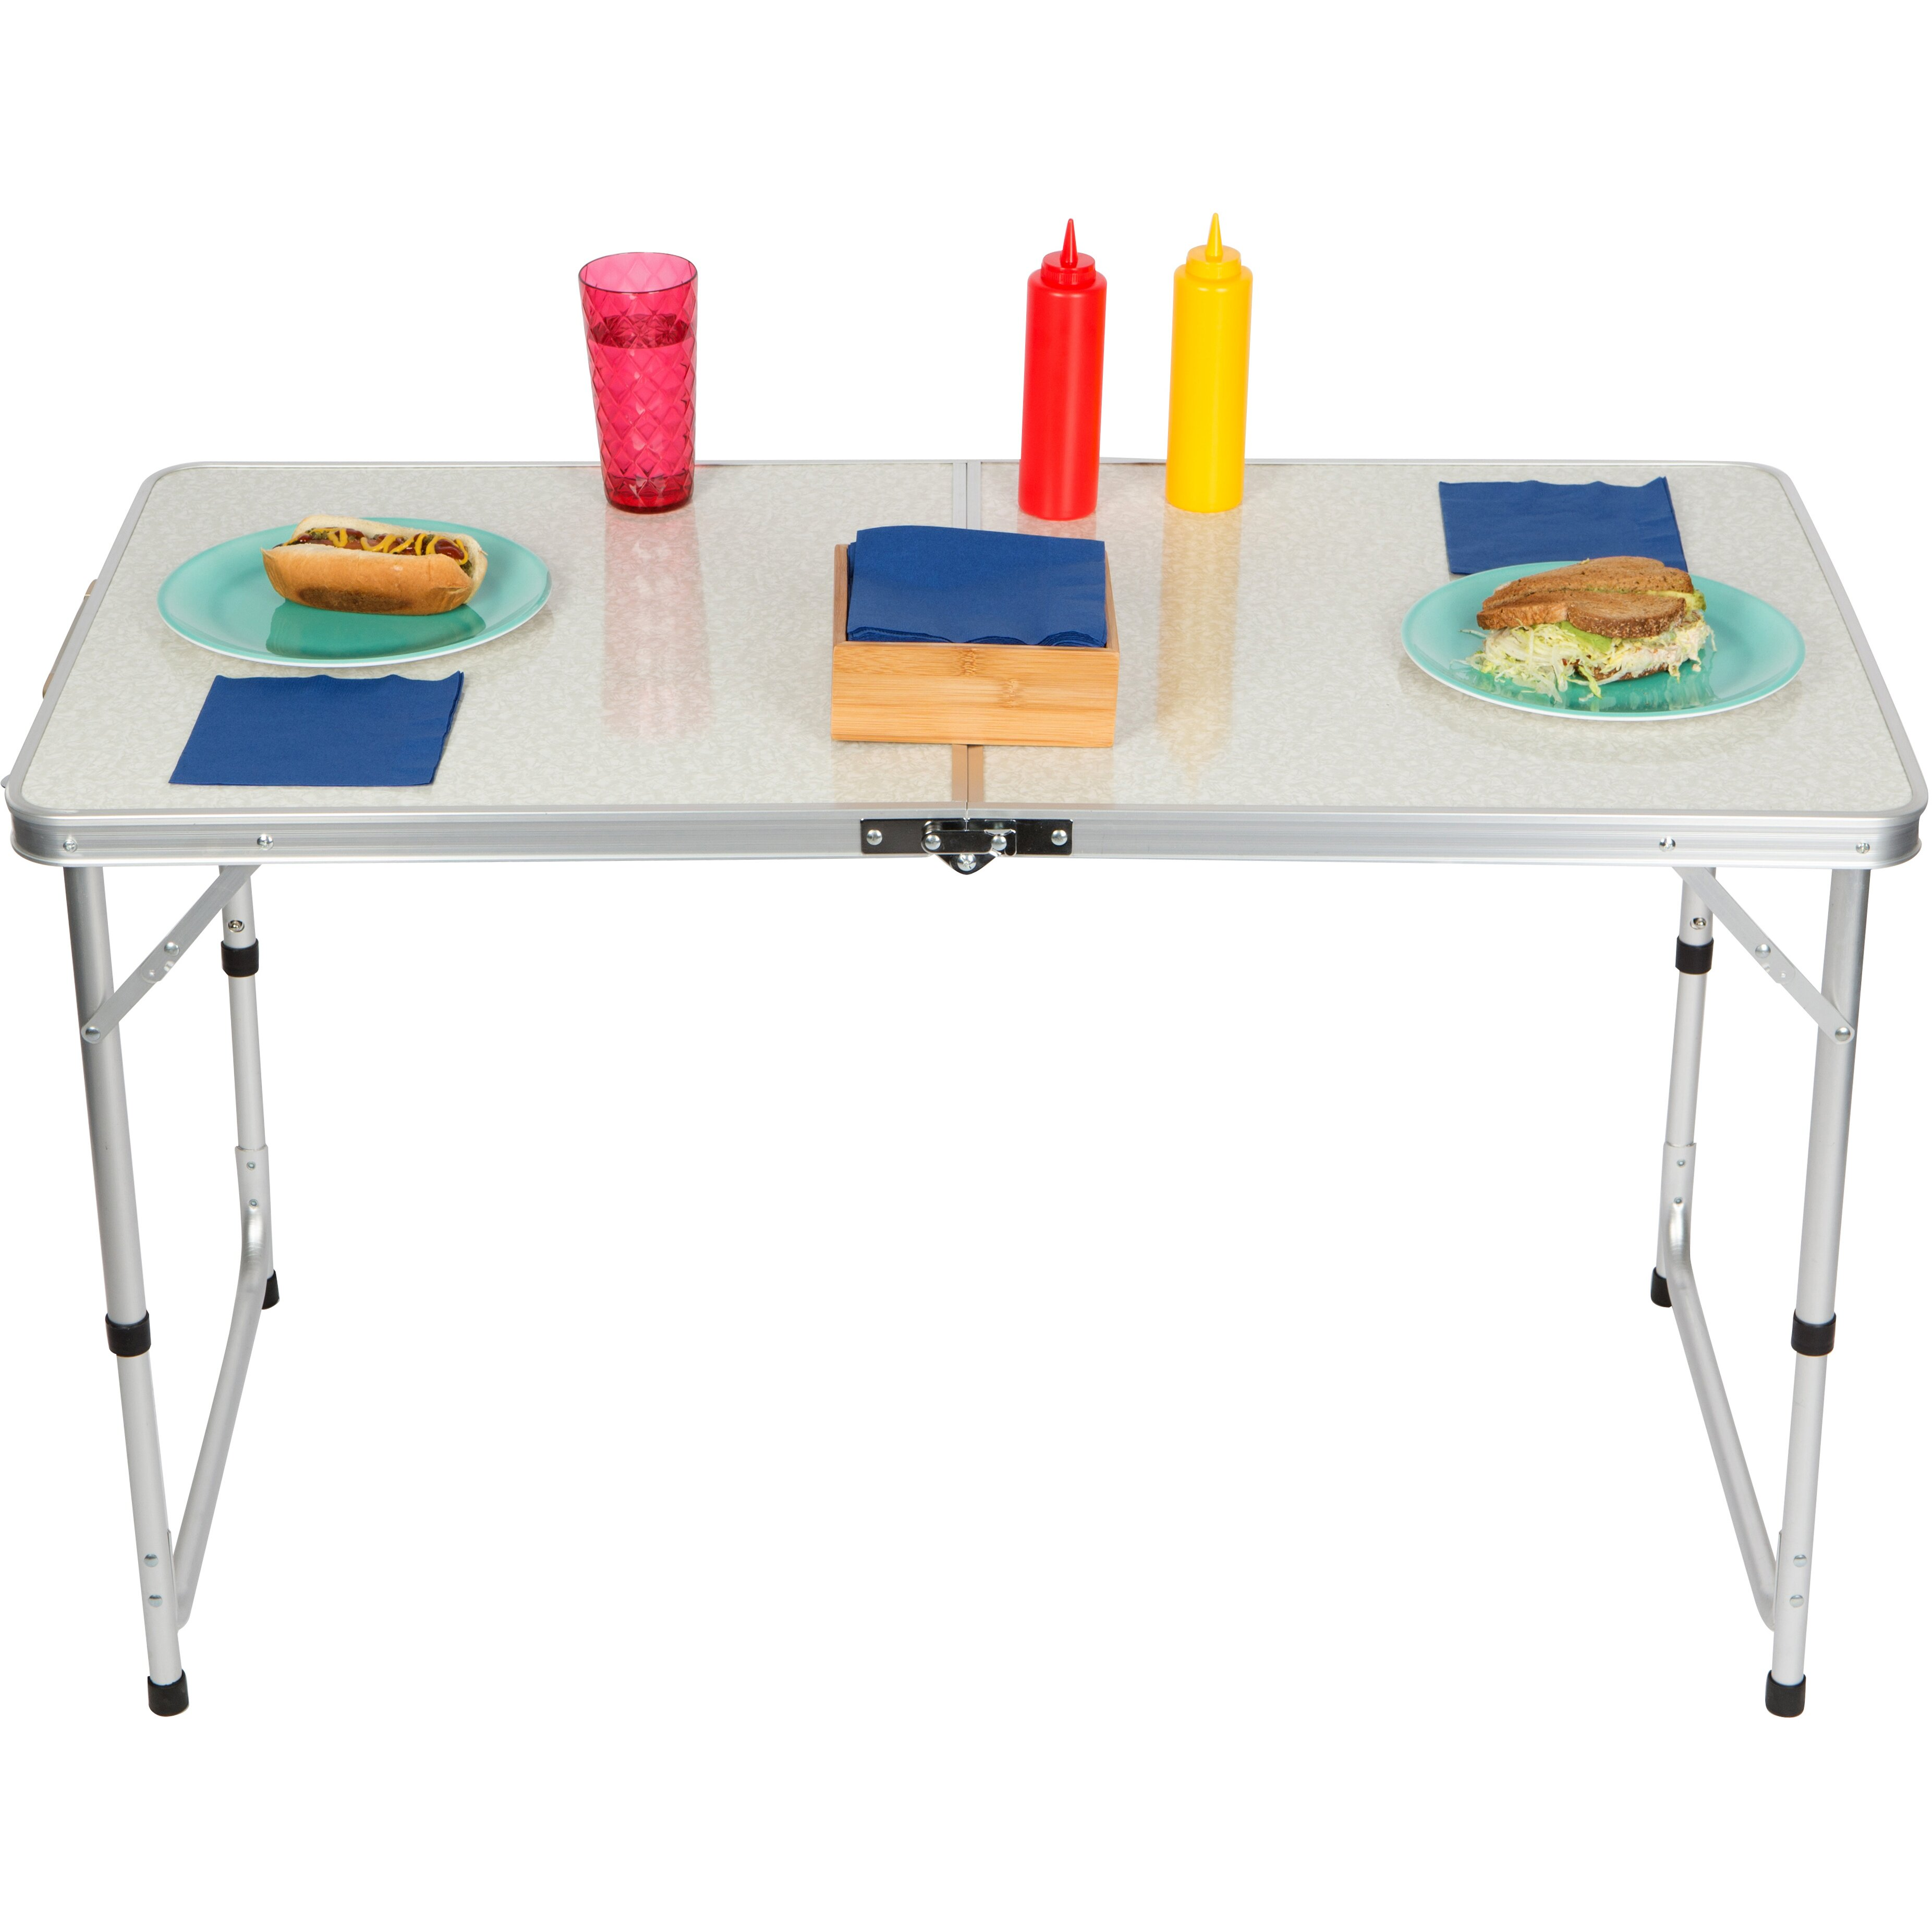 Trademark innovations picnic table reviews wayfair for 10 person picnic table